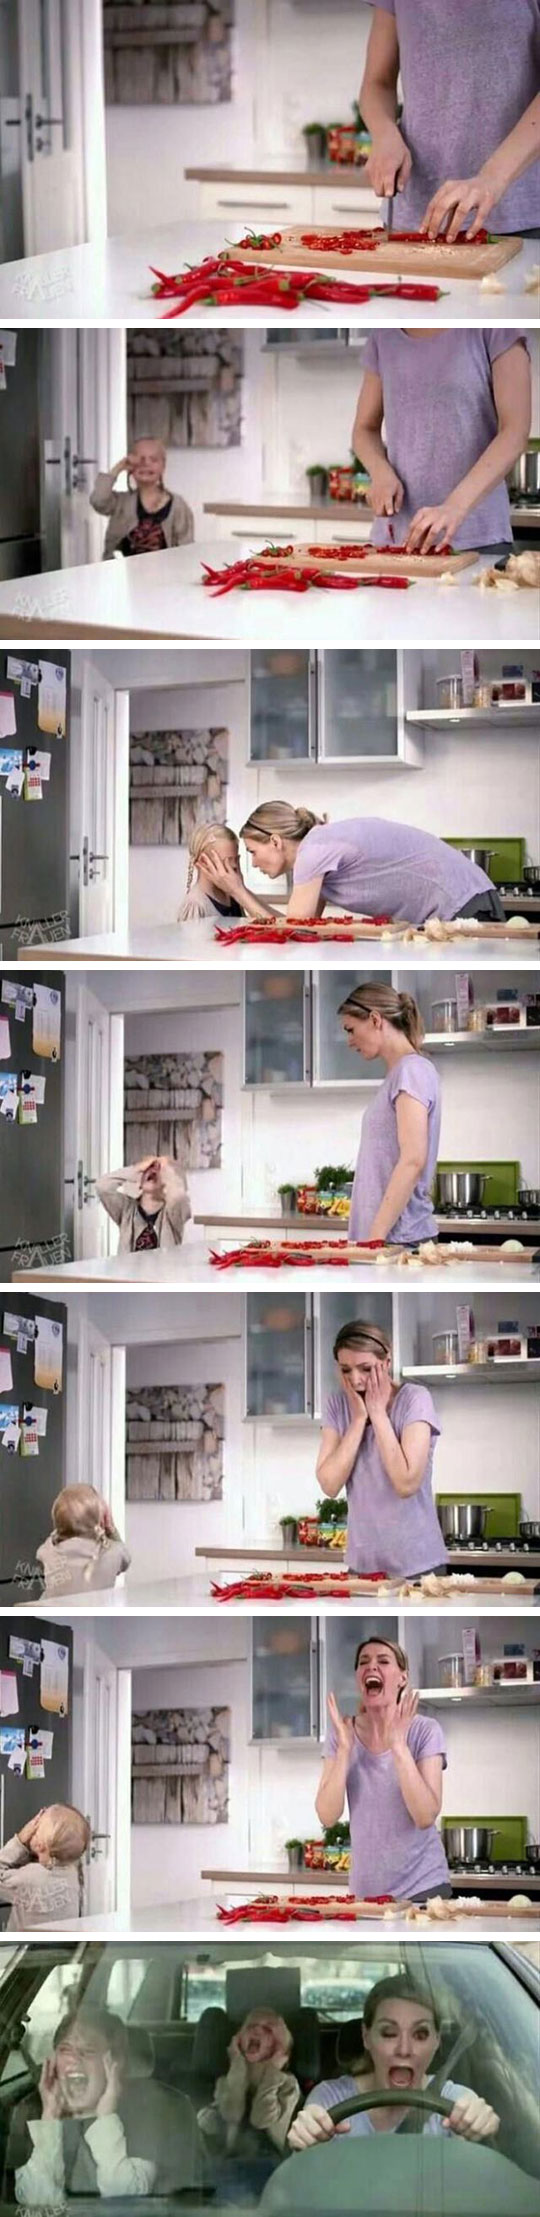 funny-mother-chopping-pepper-kid-eyes